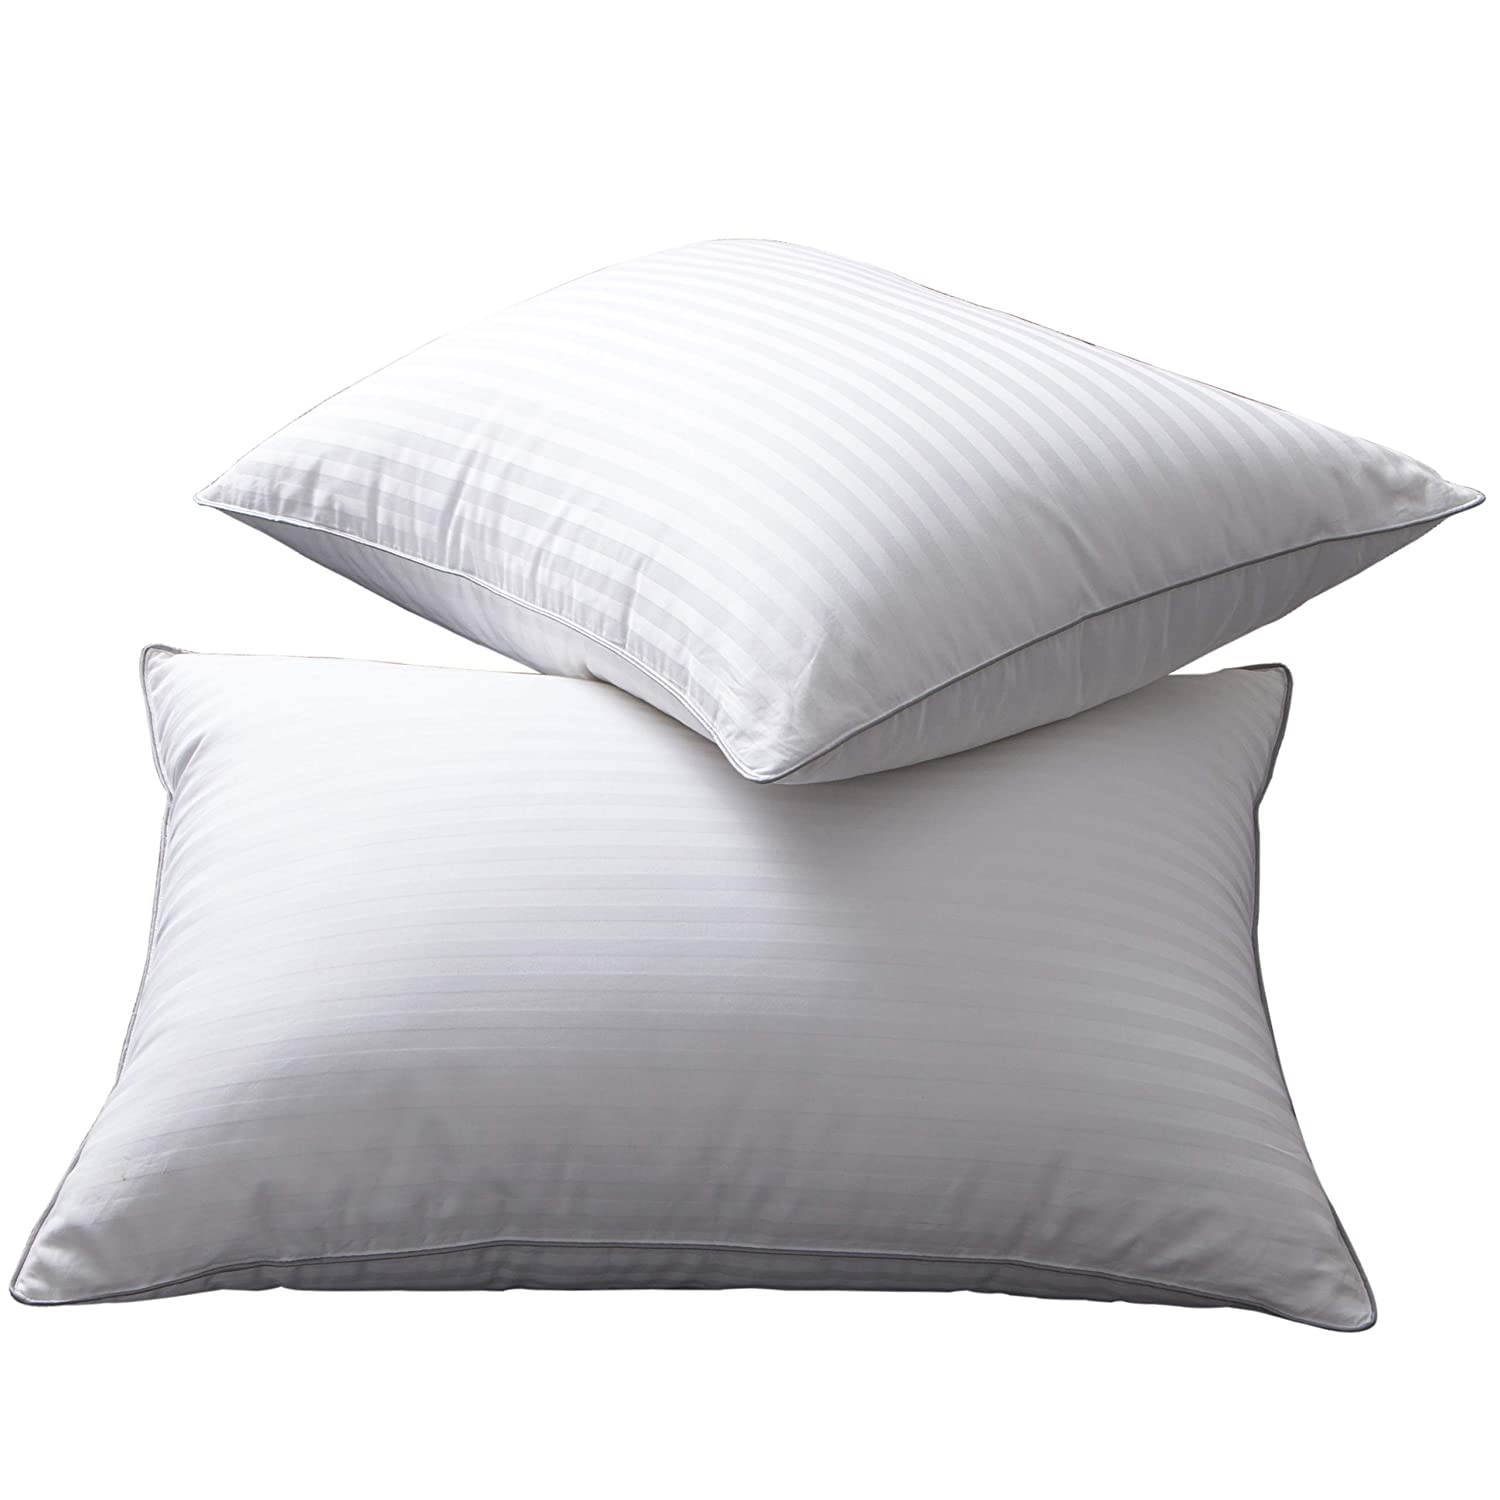 Bed Pillows Online Shopping For Clothing Shoes Jewelry